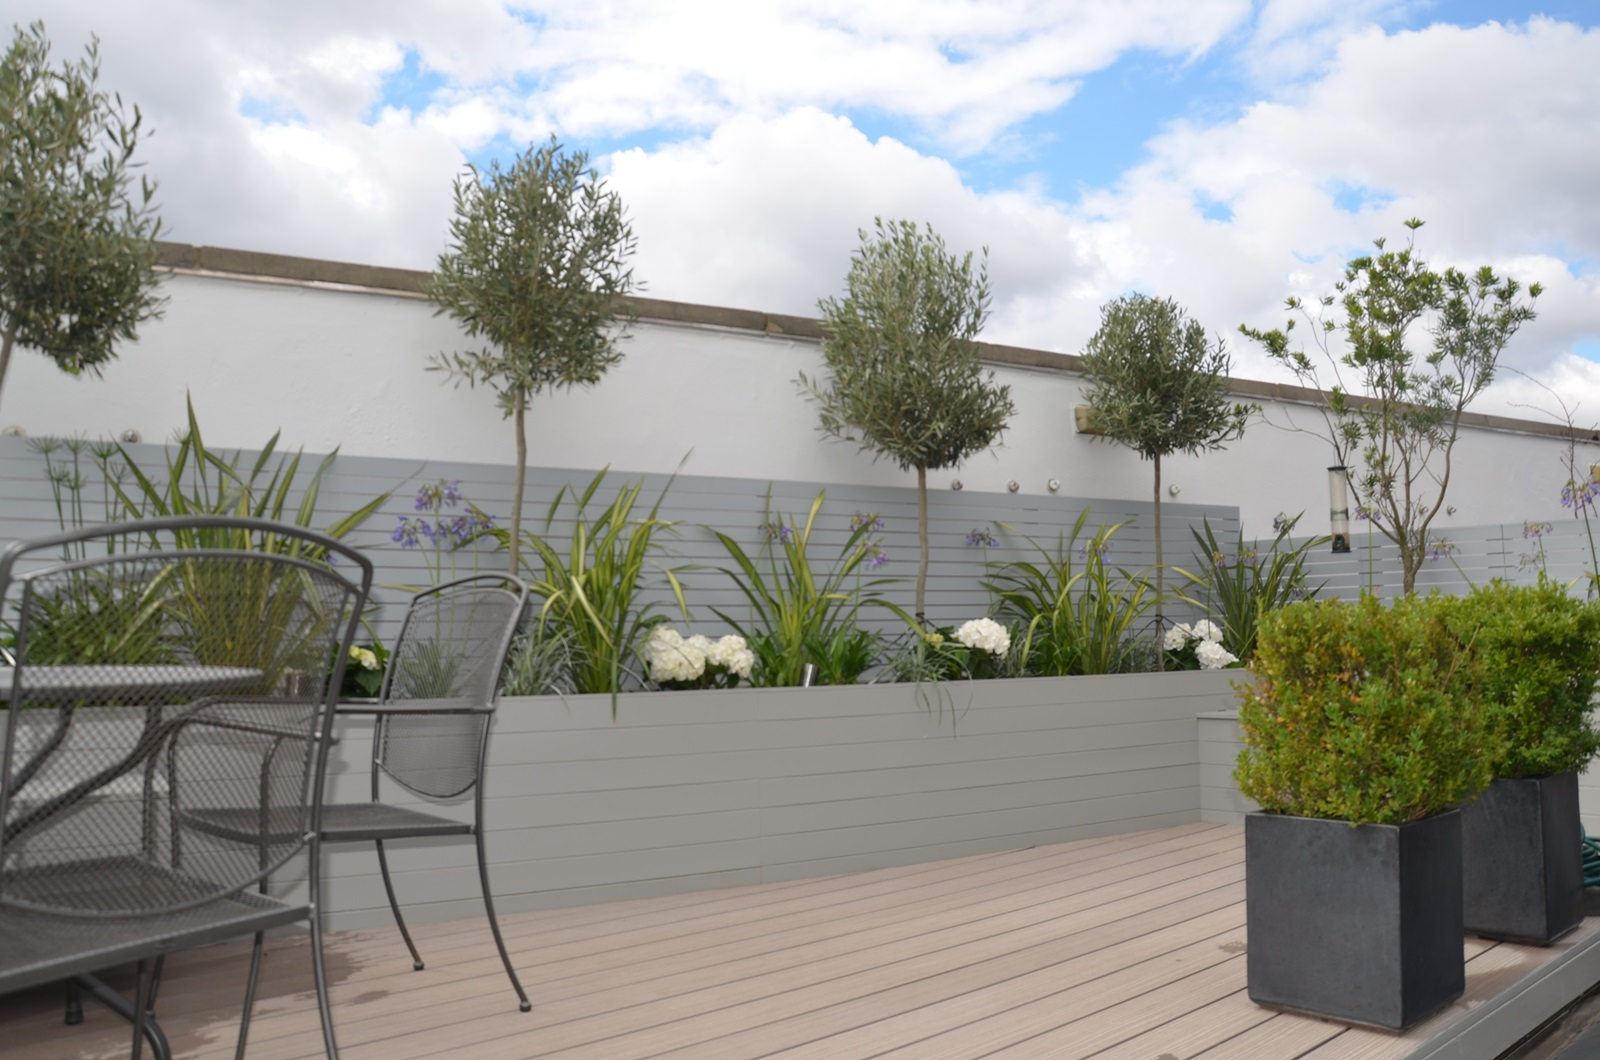 Roof Terrace Garden Design roof garden design Roof Terrace And Balcony Garden Design London